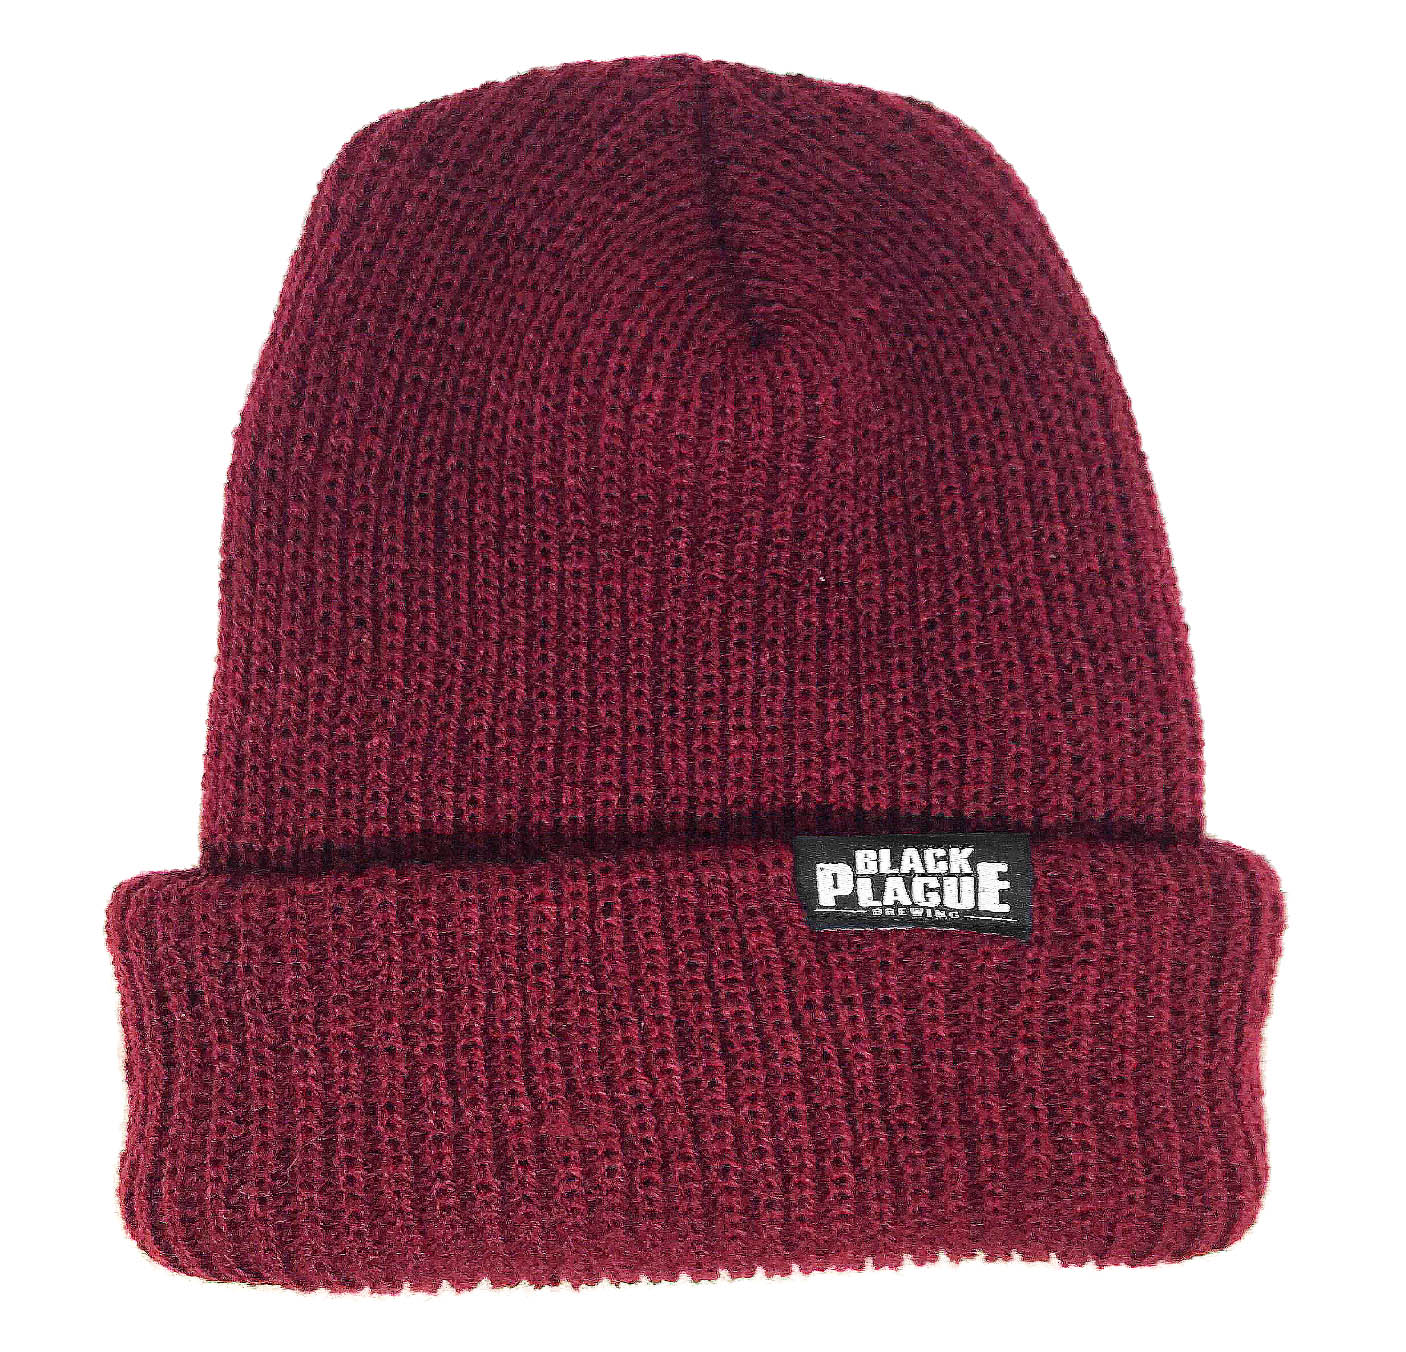 Black Plague Beanie - Oxblood - Black Plague Brewing Shop